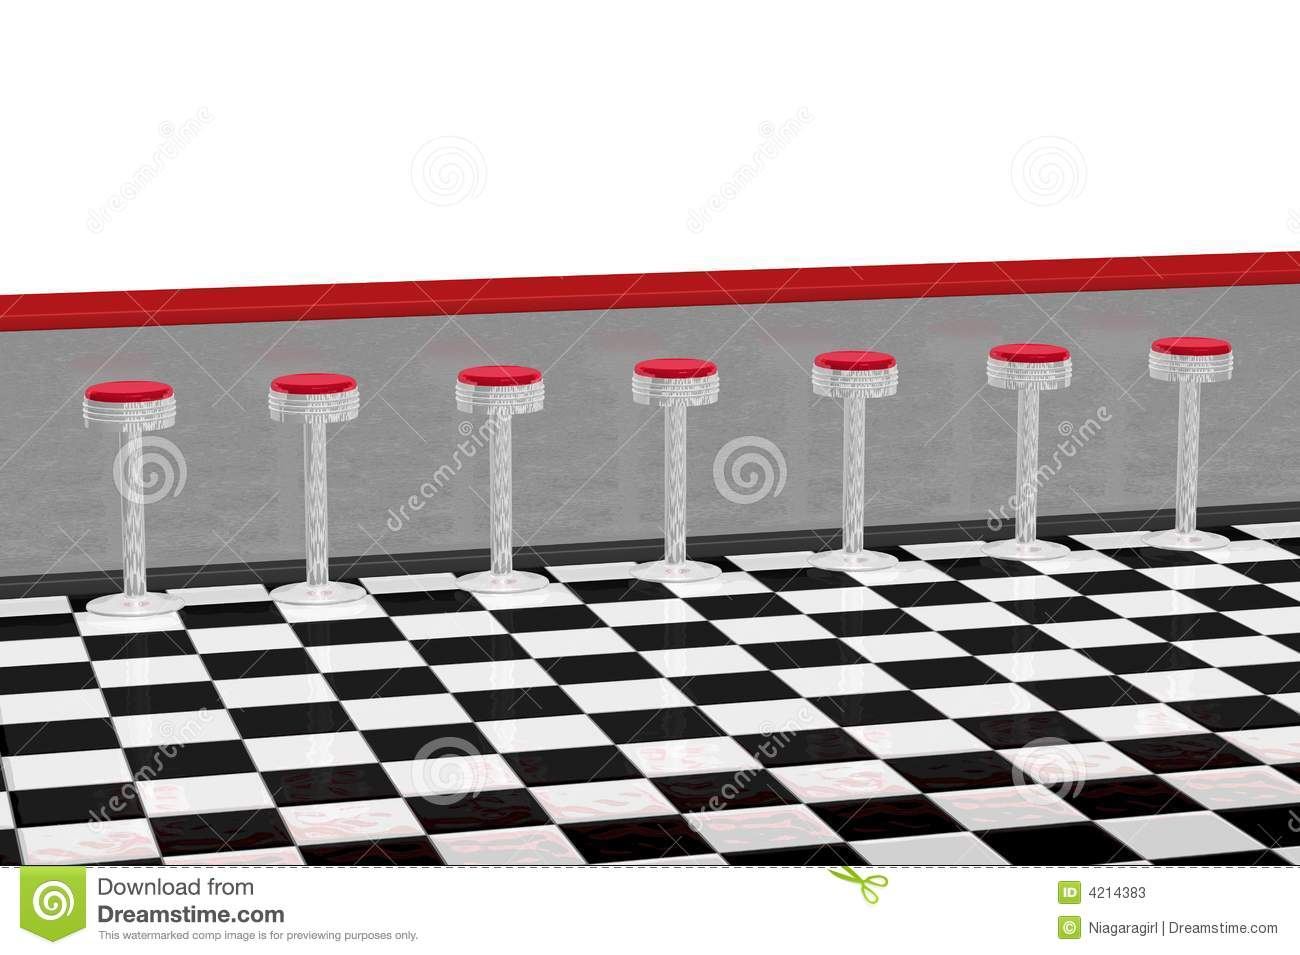 ... checker floor. Top of 3D illustration is plain white for additions